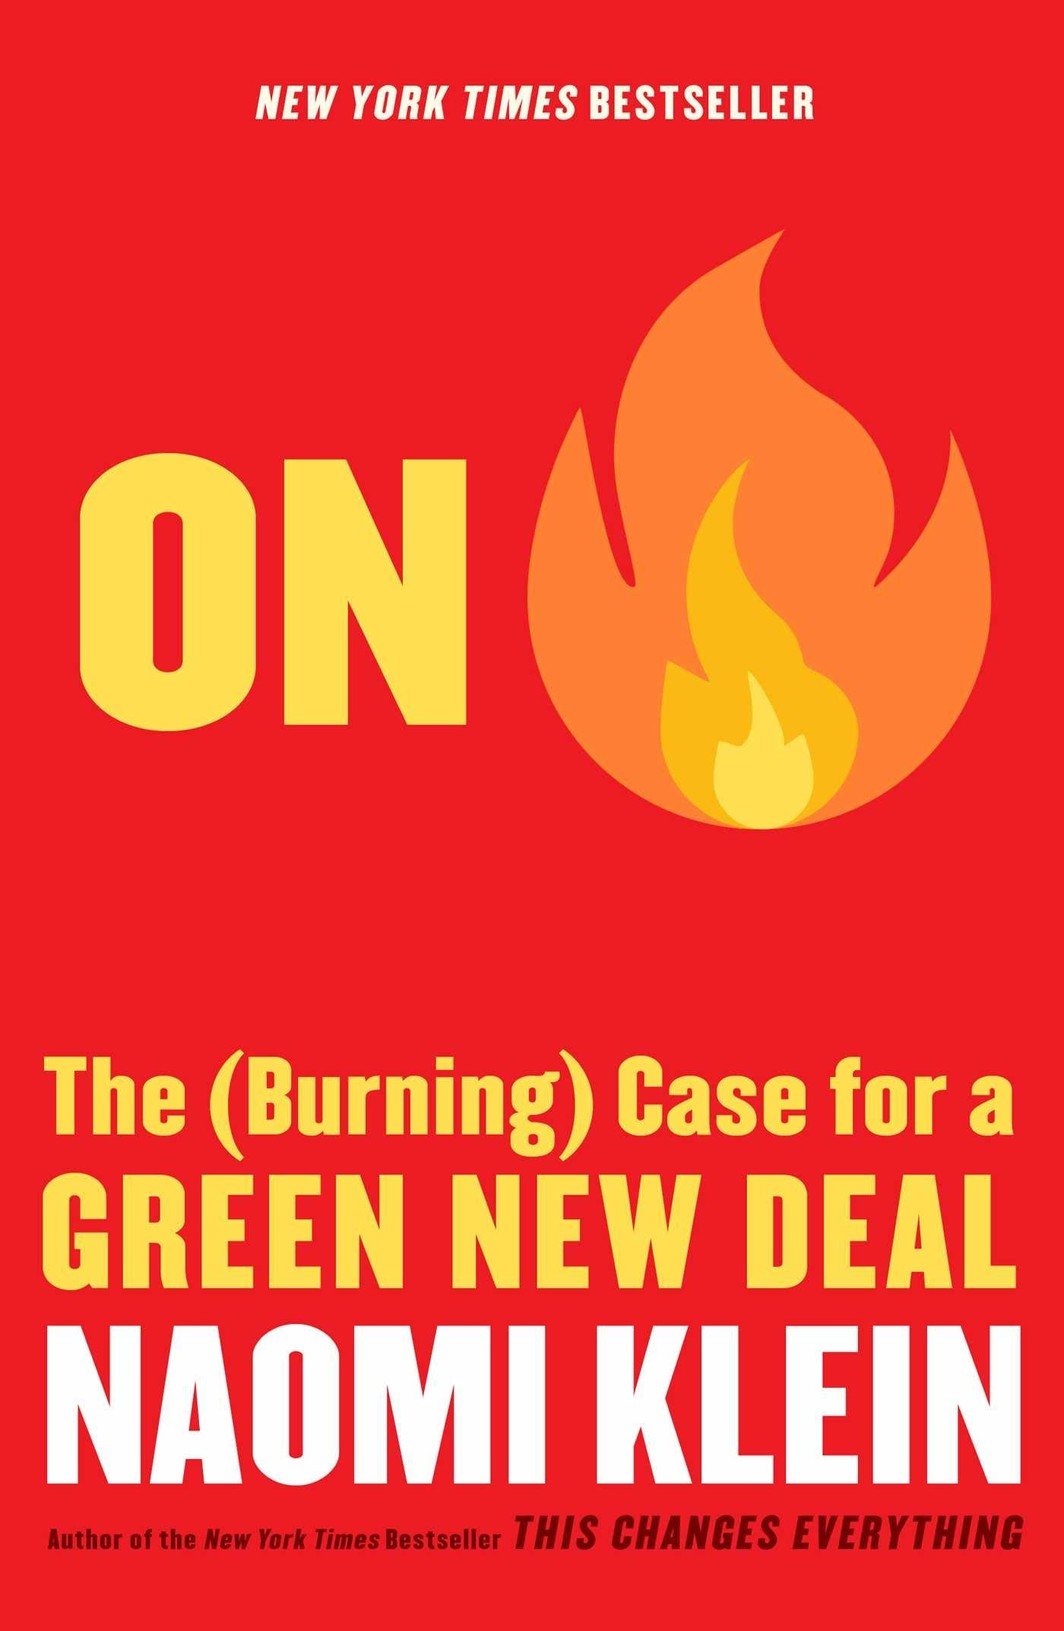 The cover of On Fire: The (Burning) Case for a Green New Deal